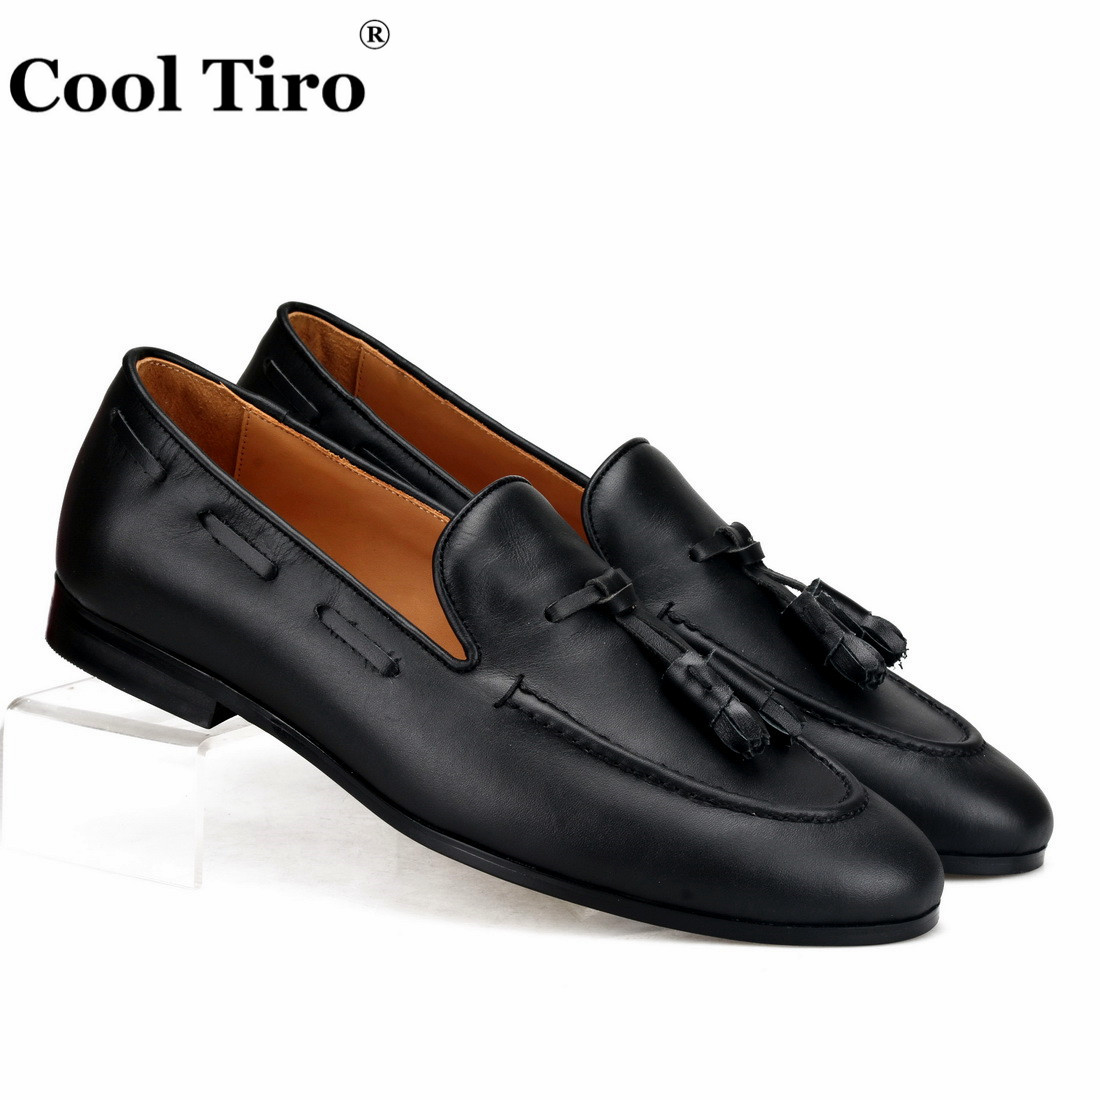 Cool Tiro Black Calfskin Loafers Men s Moccasins Slippers With Tassels Casual Shoes Wedding Party Dress